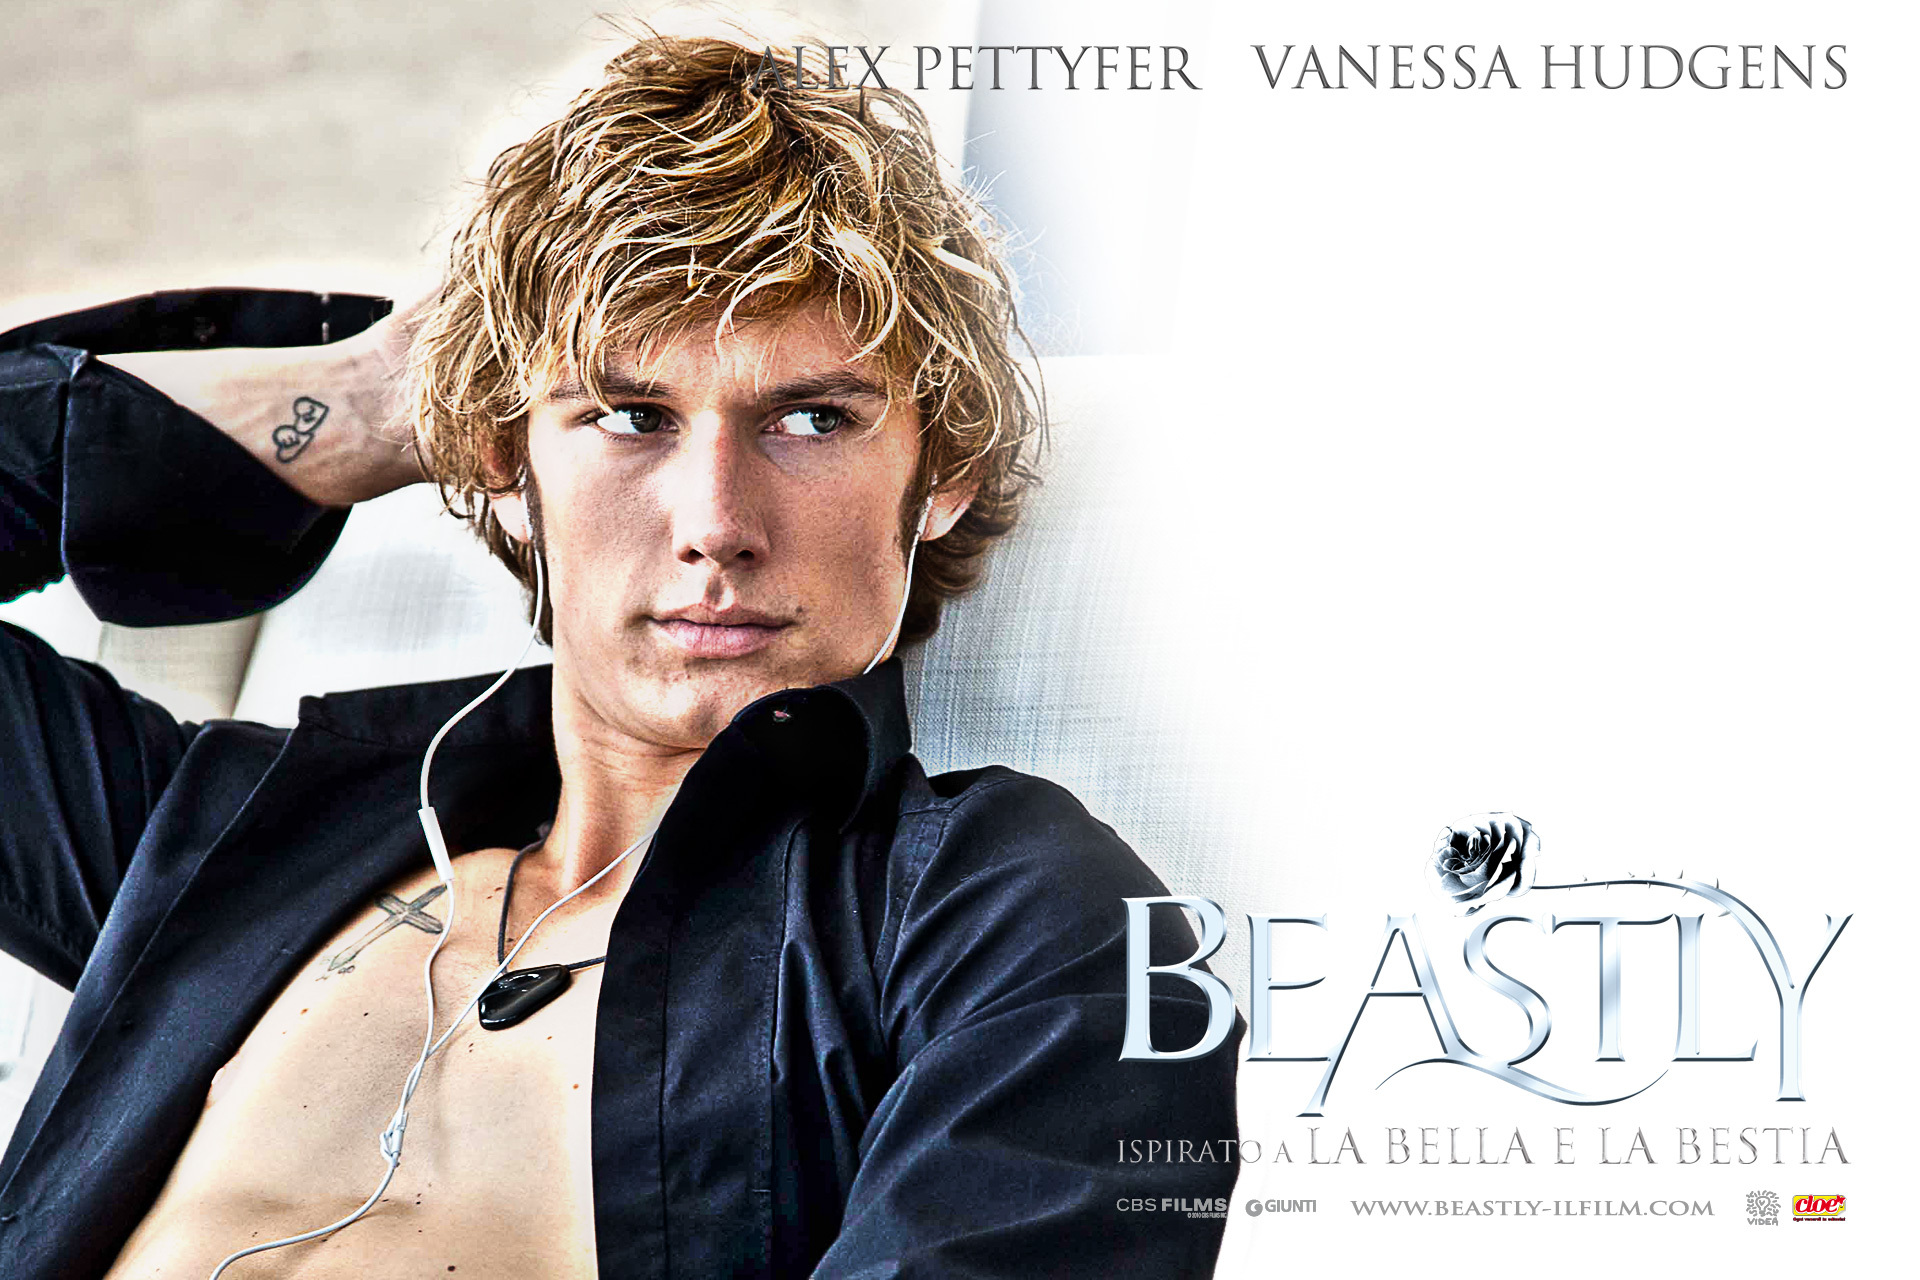 http://images5.fanpop.com/image/photos/26100000/Beastly-Wallpaper-beastly-film-26164822-1920-1280.jpg